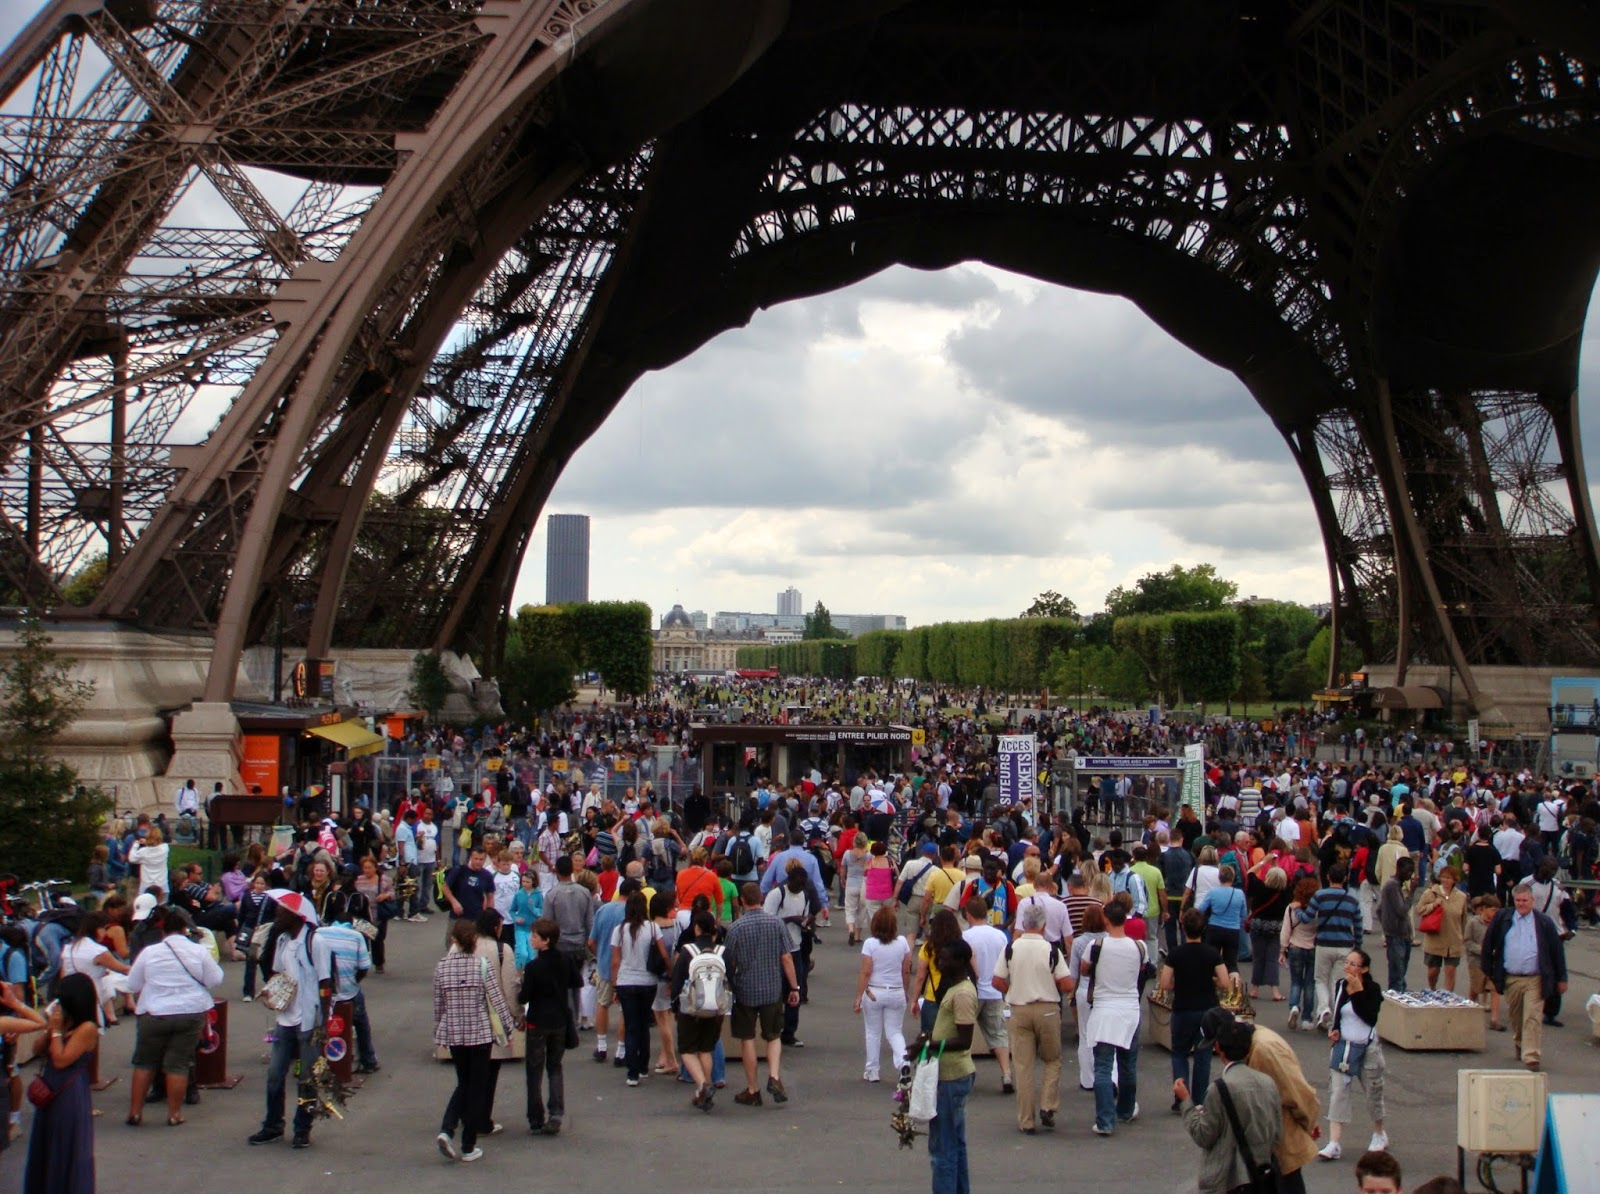 Crowded in Paris